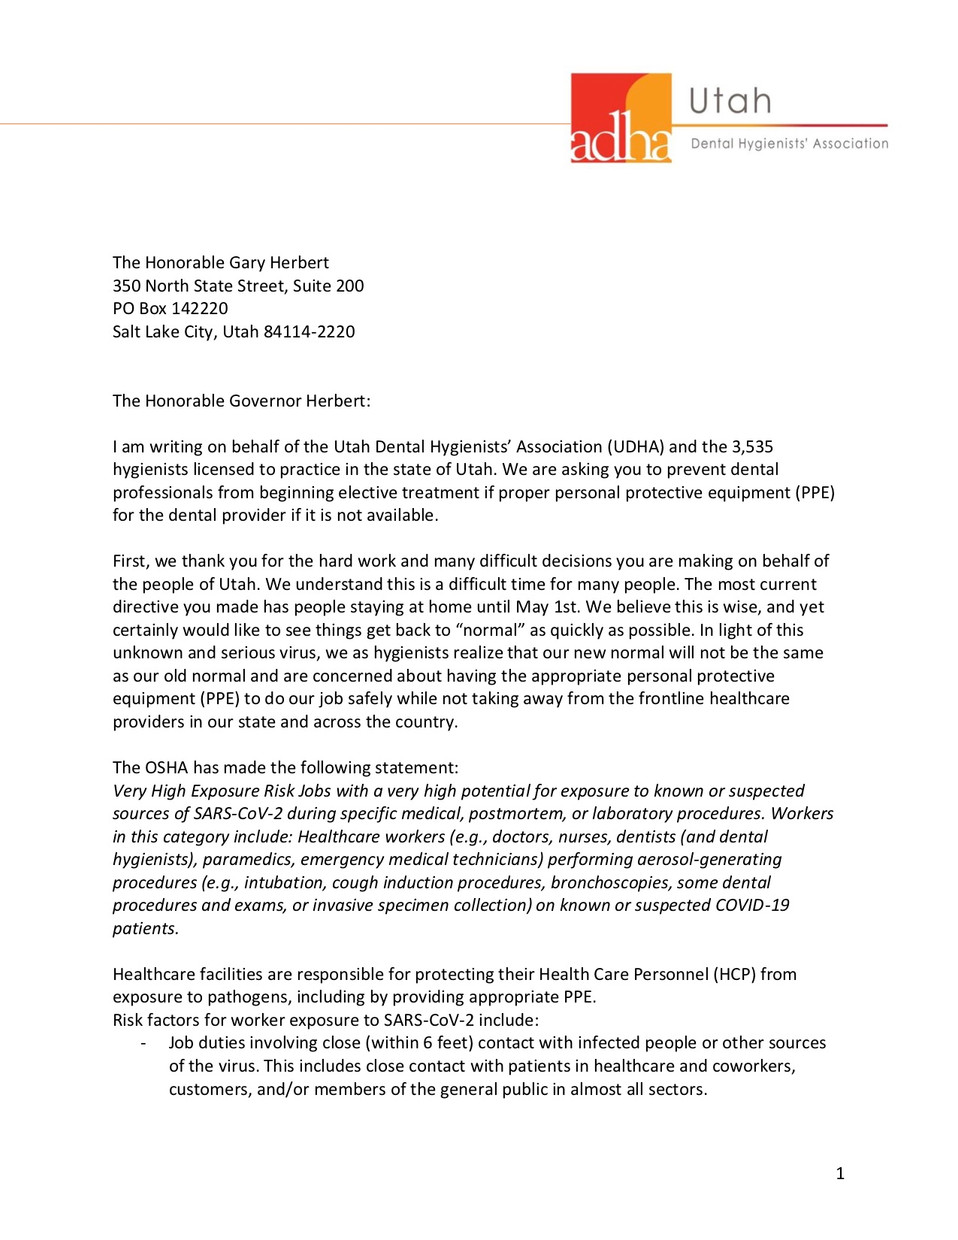 A Letter to Governor Gary Herbert from the Utah Dental Hygienists' Association